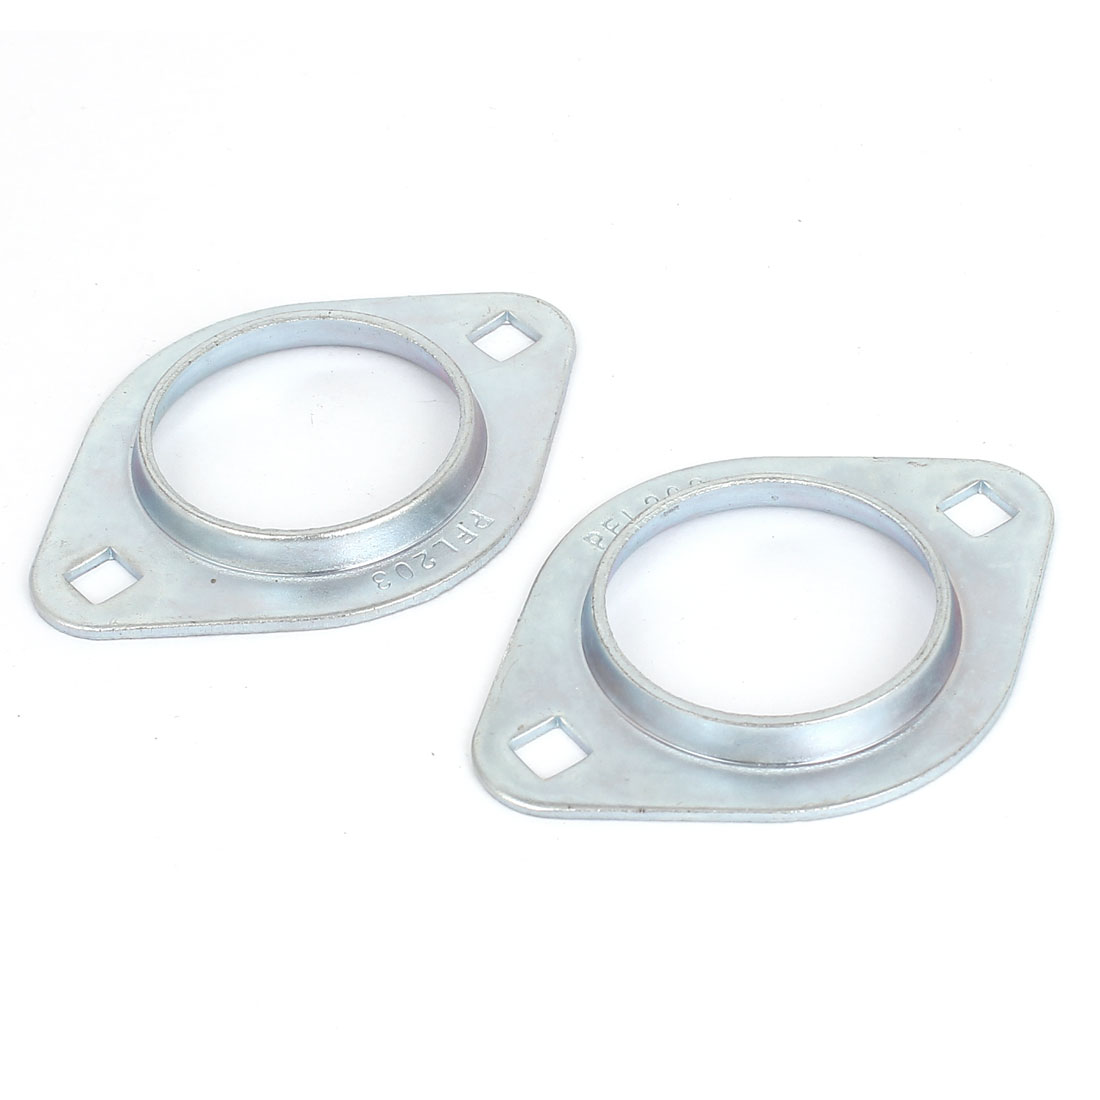 SBPFL203 Pressed Steel Flange Bearing Holder Housing Oval Pillow Block 2pcs